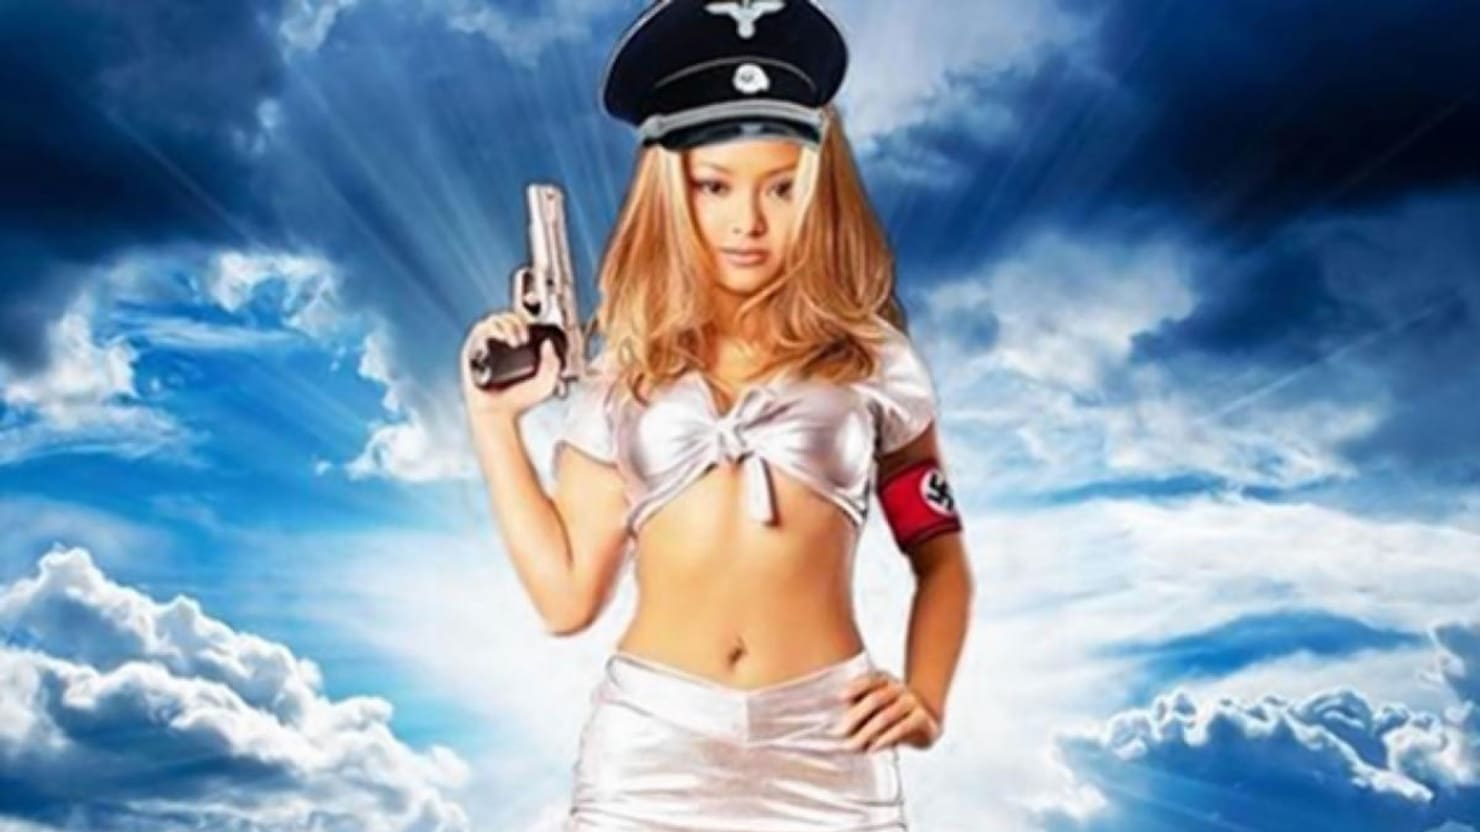 Please Tila tequila fucks dude think